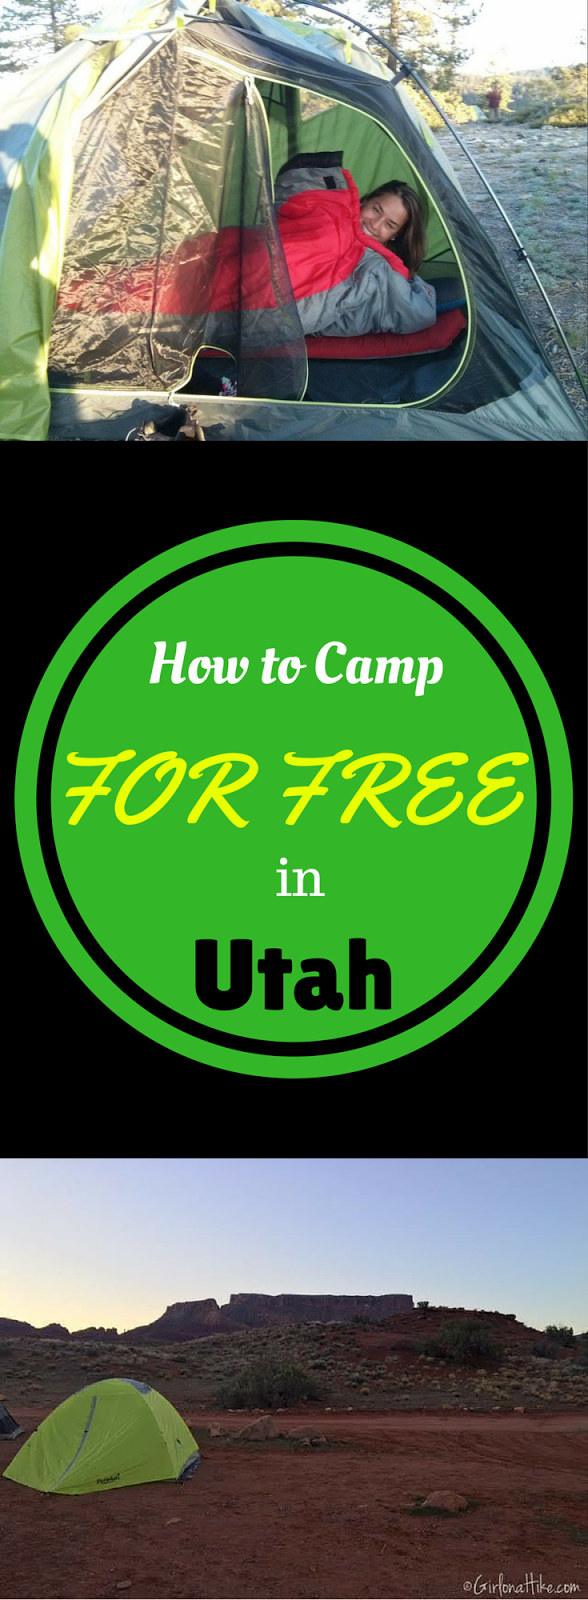 How to Camp for FREE In Utah!